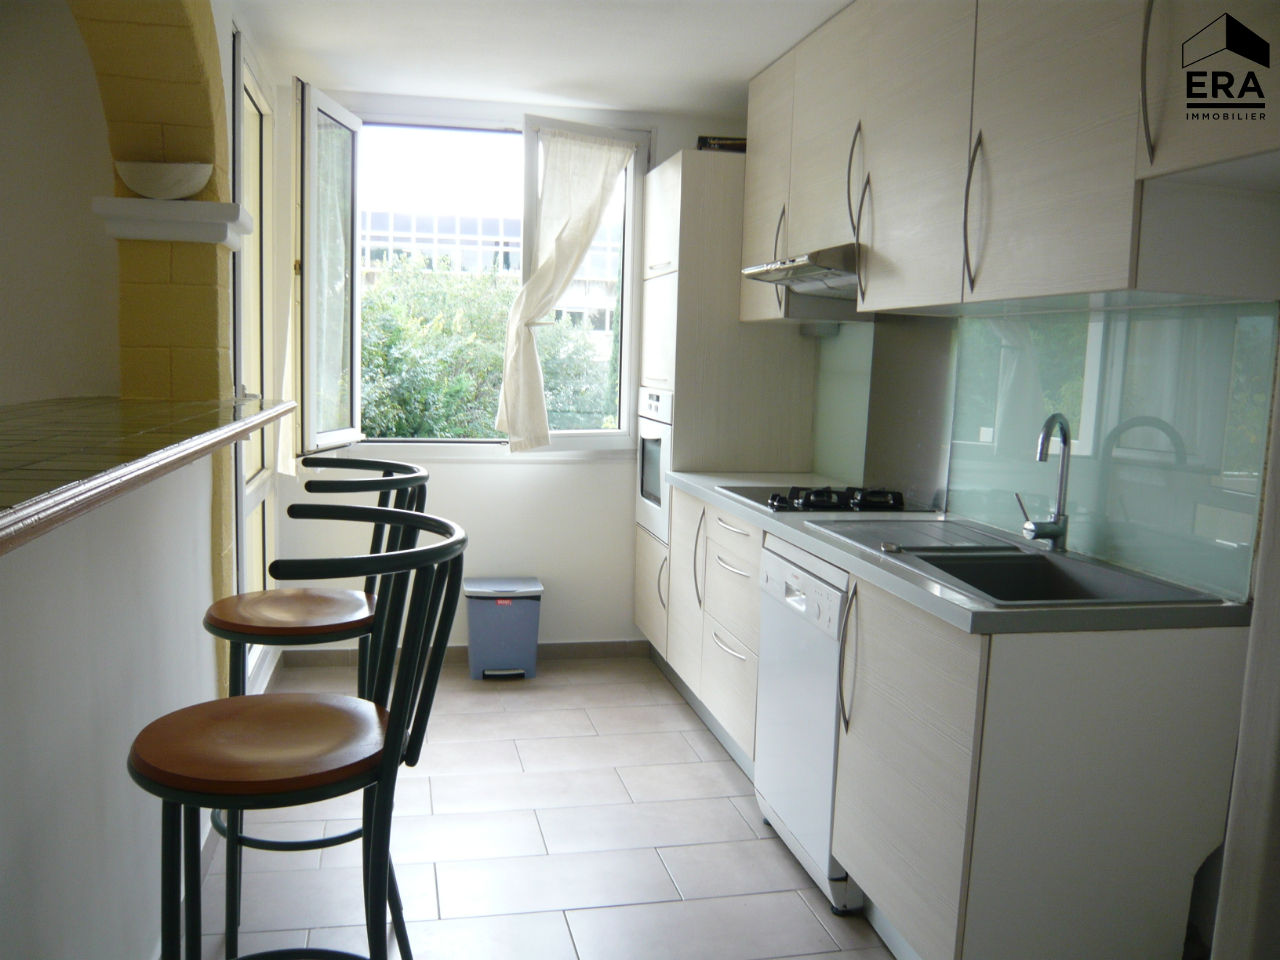 Appartement Aix Sud de 4 piéces Terrasse et 2 places de parking